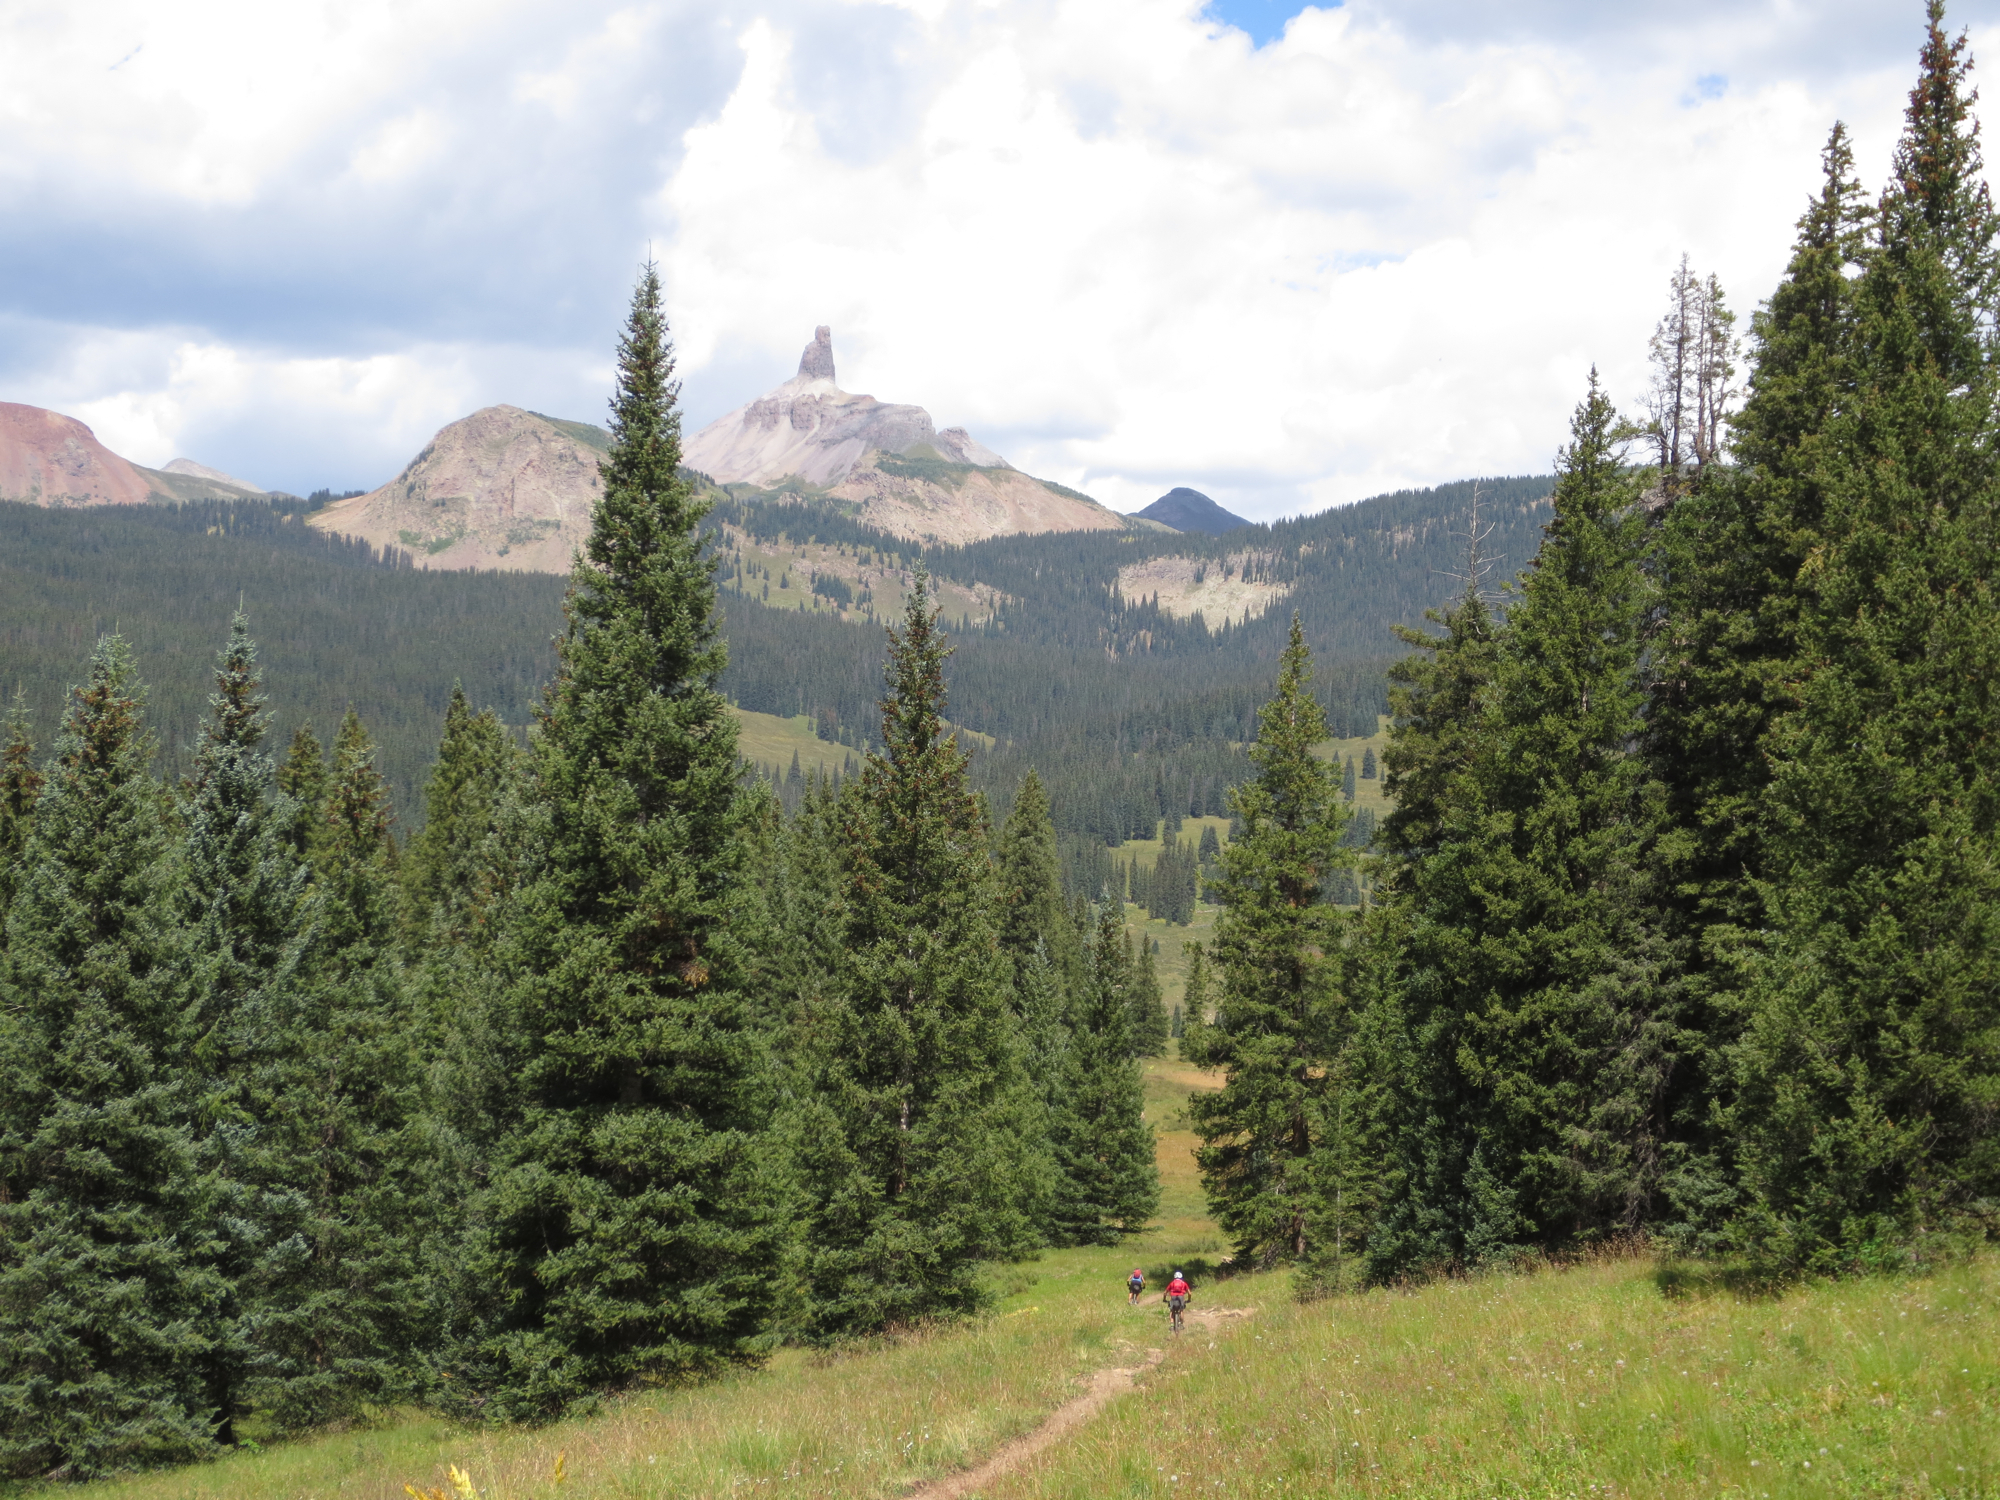 East Fork trail is like an express lane to the Lizard Head area from the Durango side of the mountains - if you're on a mountain bike.